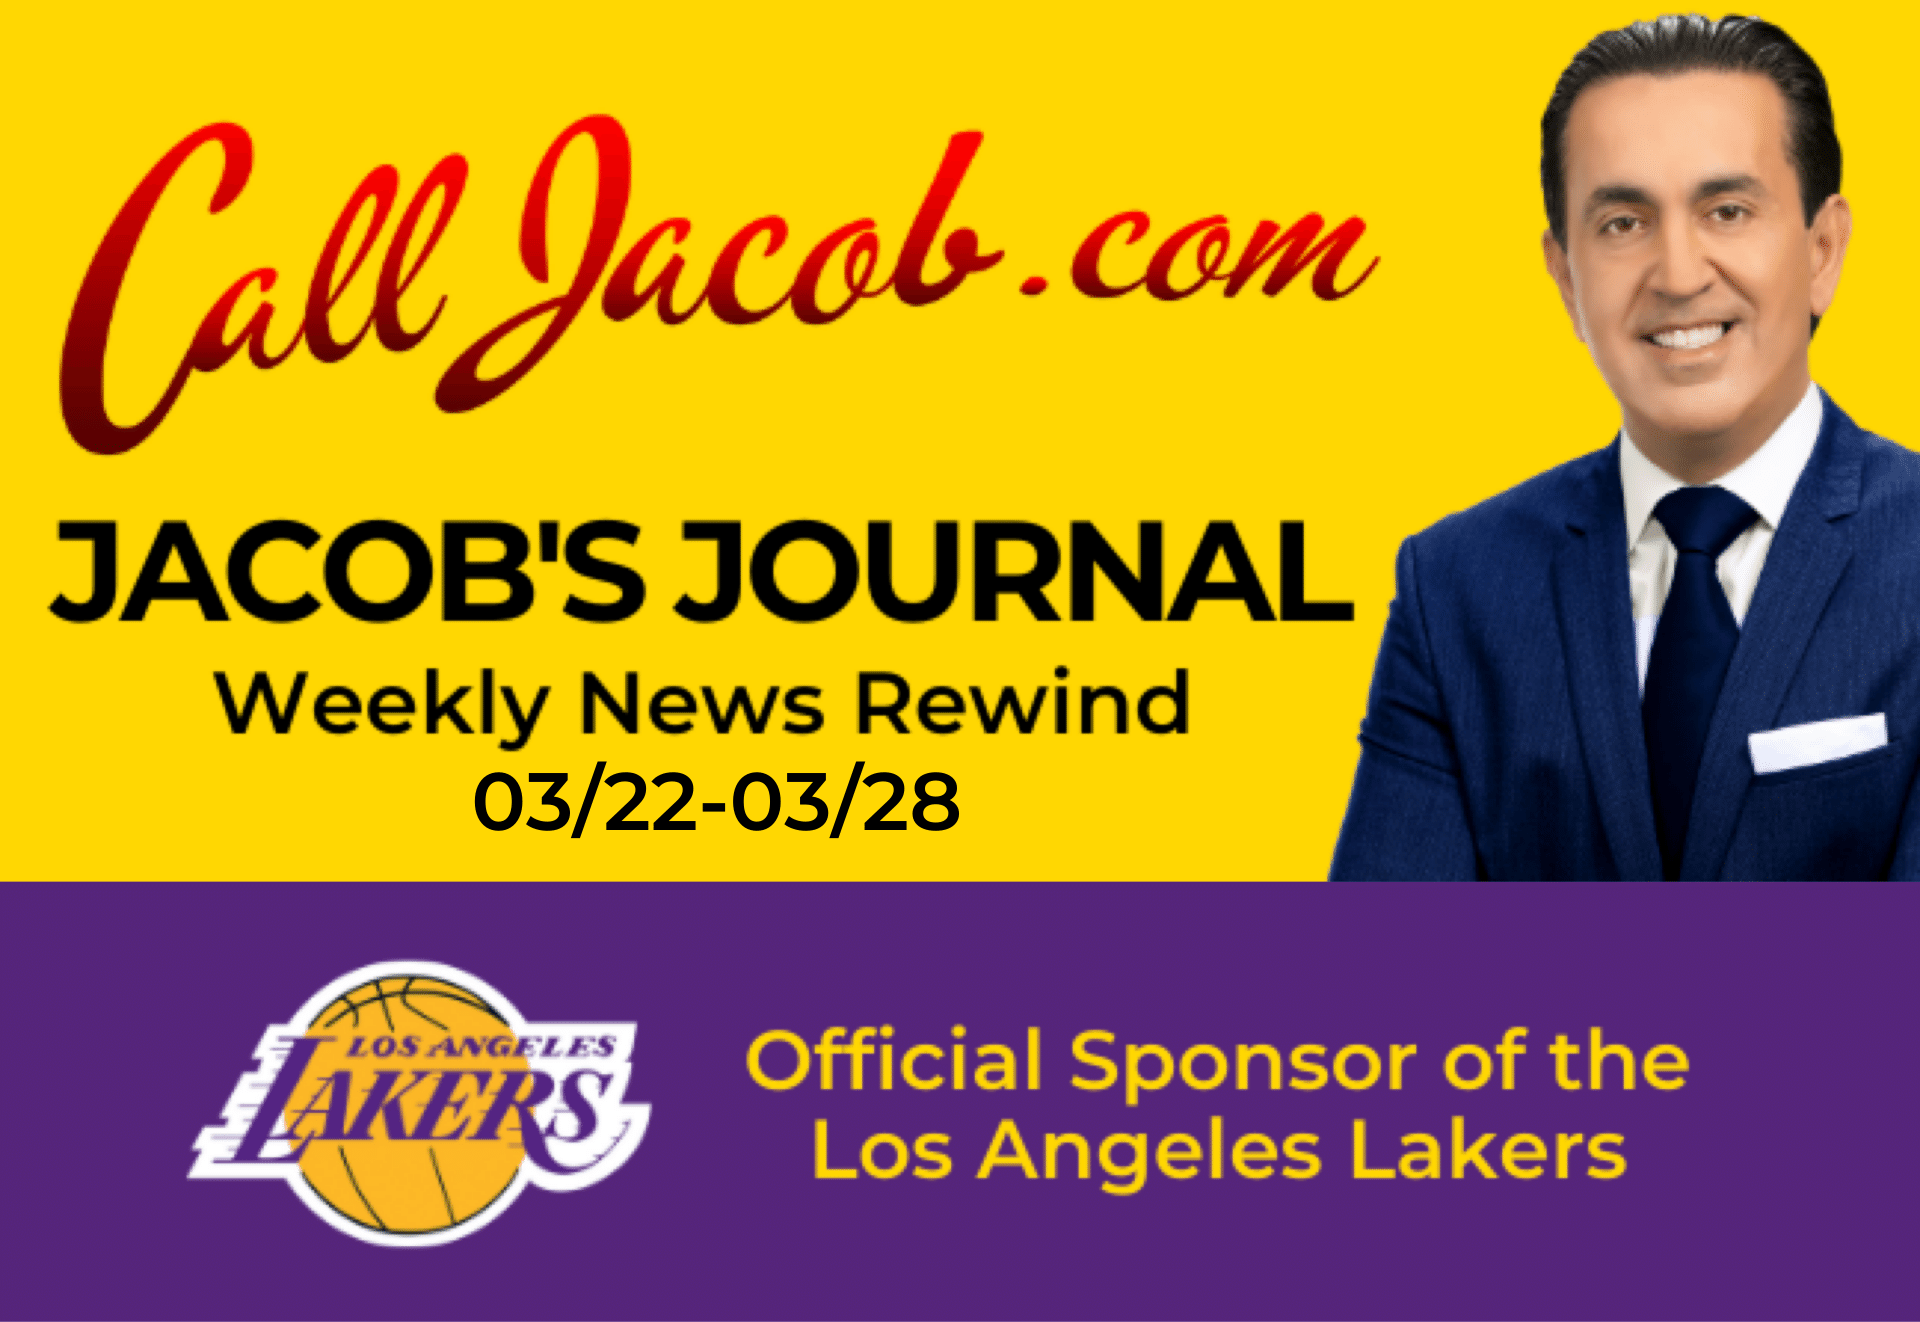 JacobsJournalWeeklyNewsRewind March 22nd to March 28th 2021